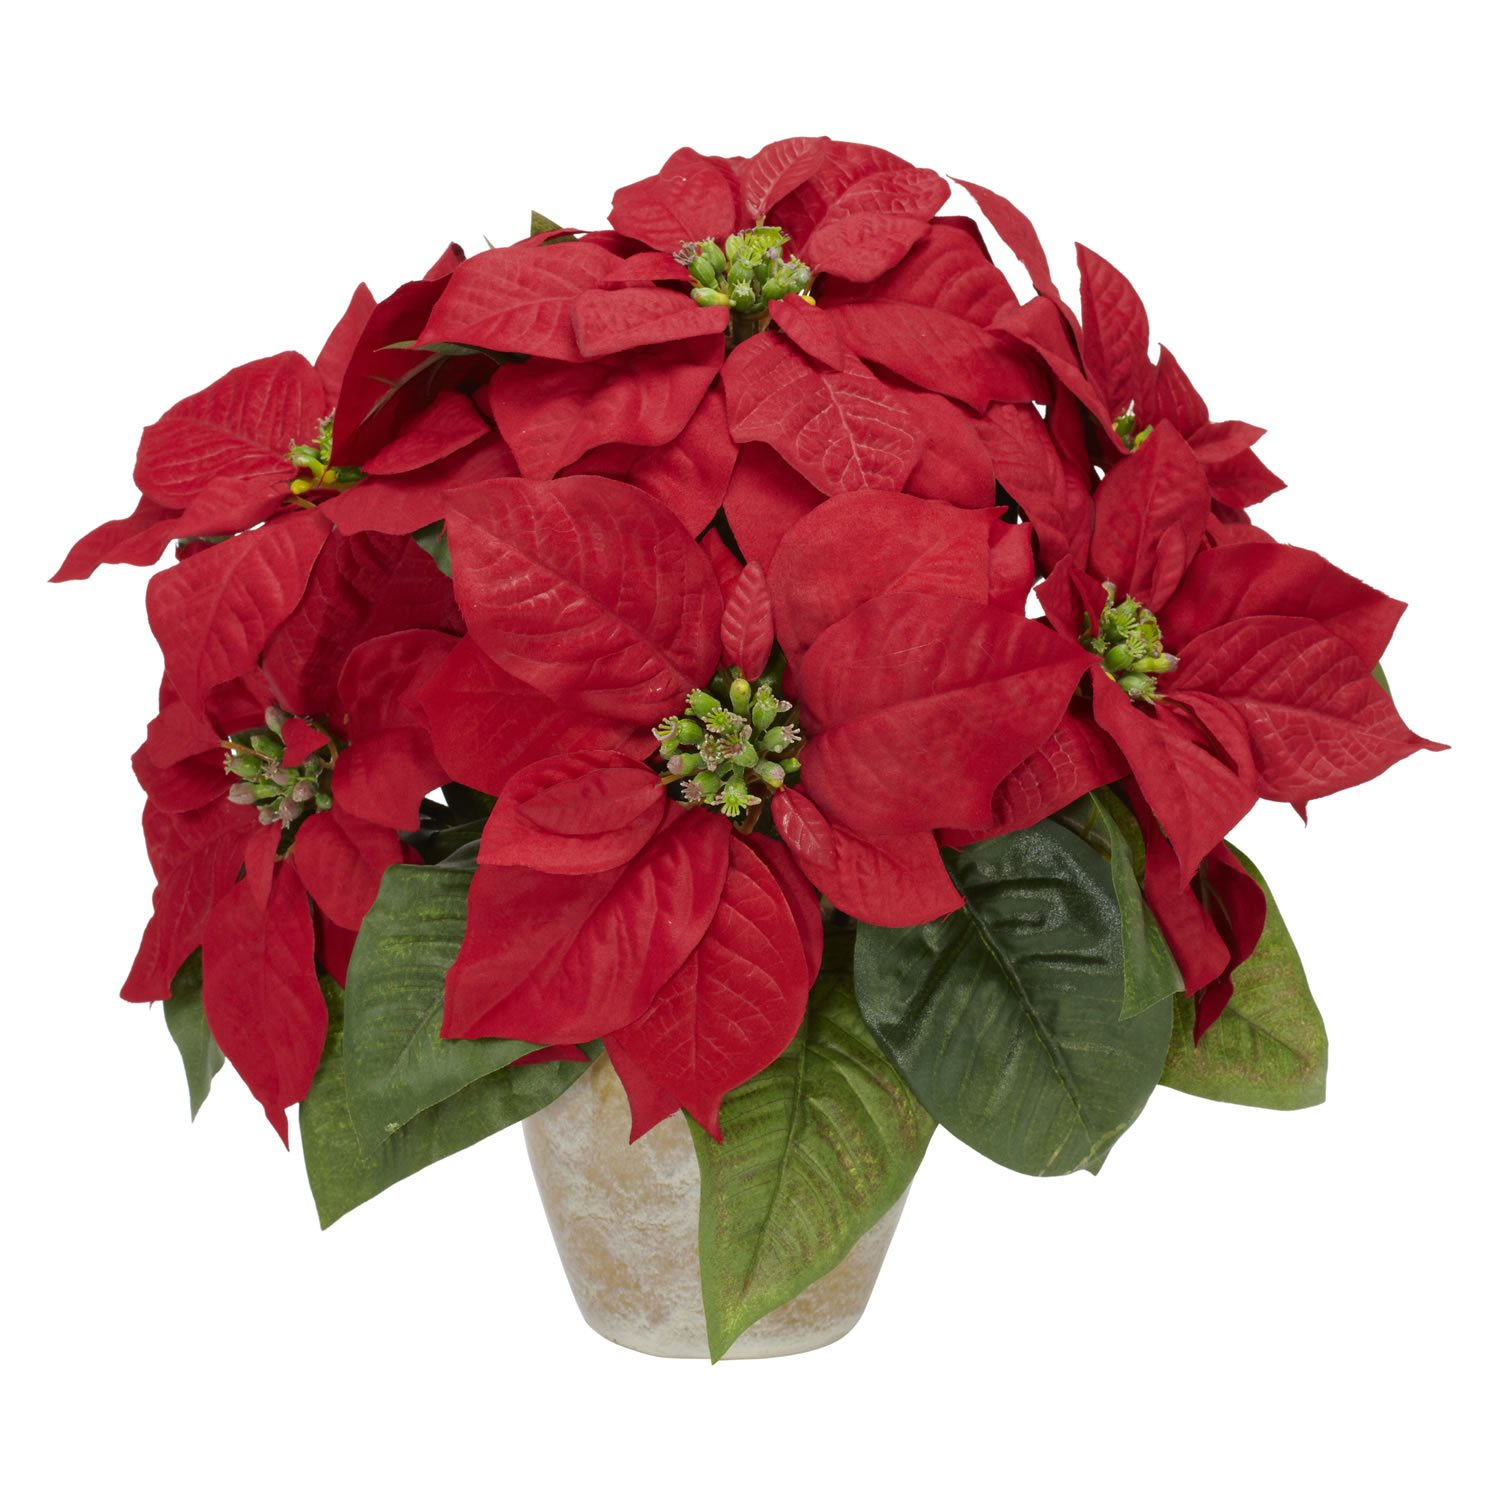 Nearly-Natural-1268-Poinsettia-with-Ceramic-Vase-Silk-Flower-Arrangement-Red